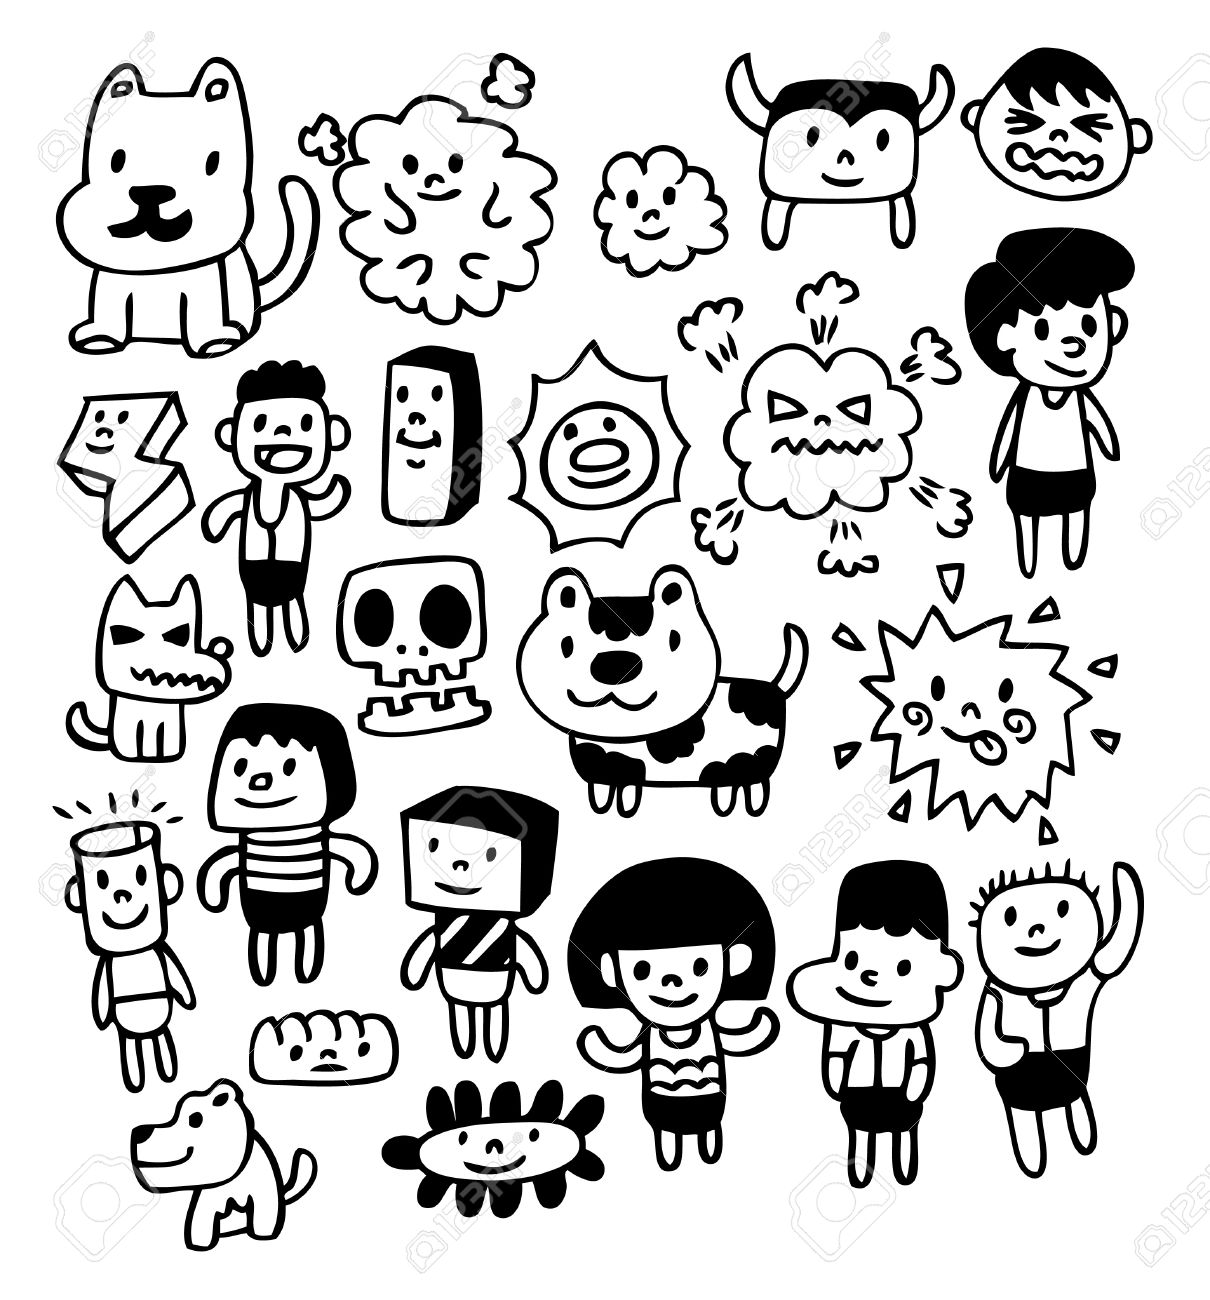 Cute Doodles To Draw For Your Girlfriend 8493698-hand-draw-cute-cartoon